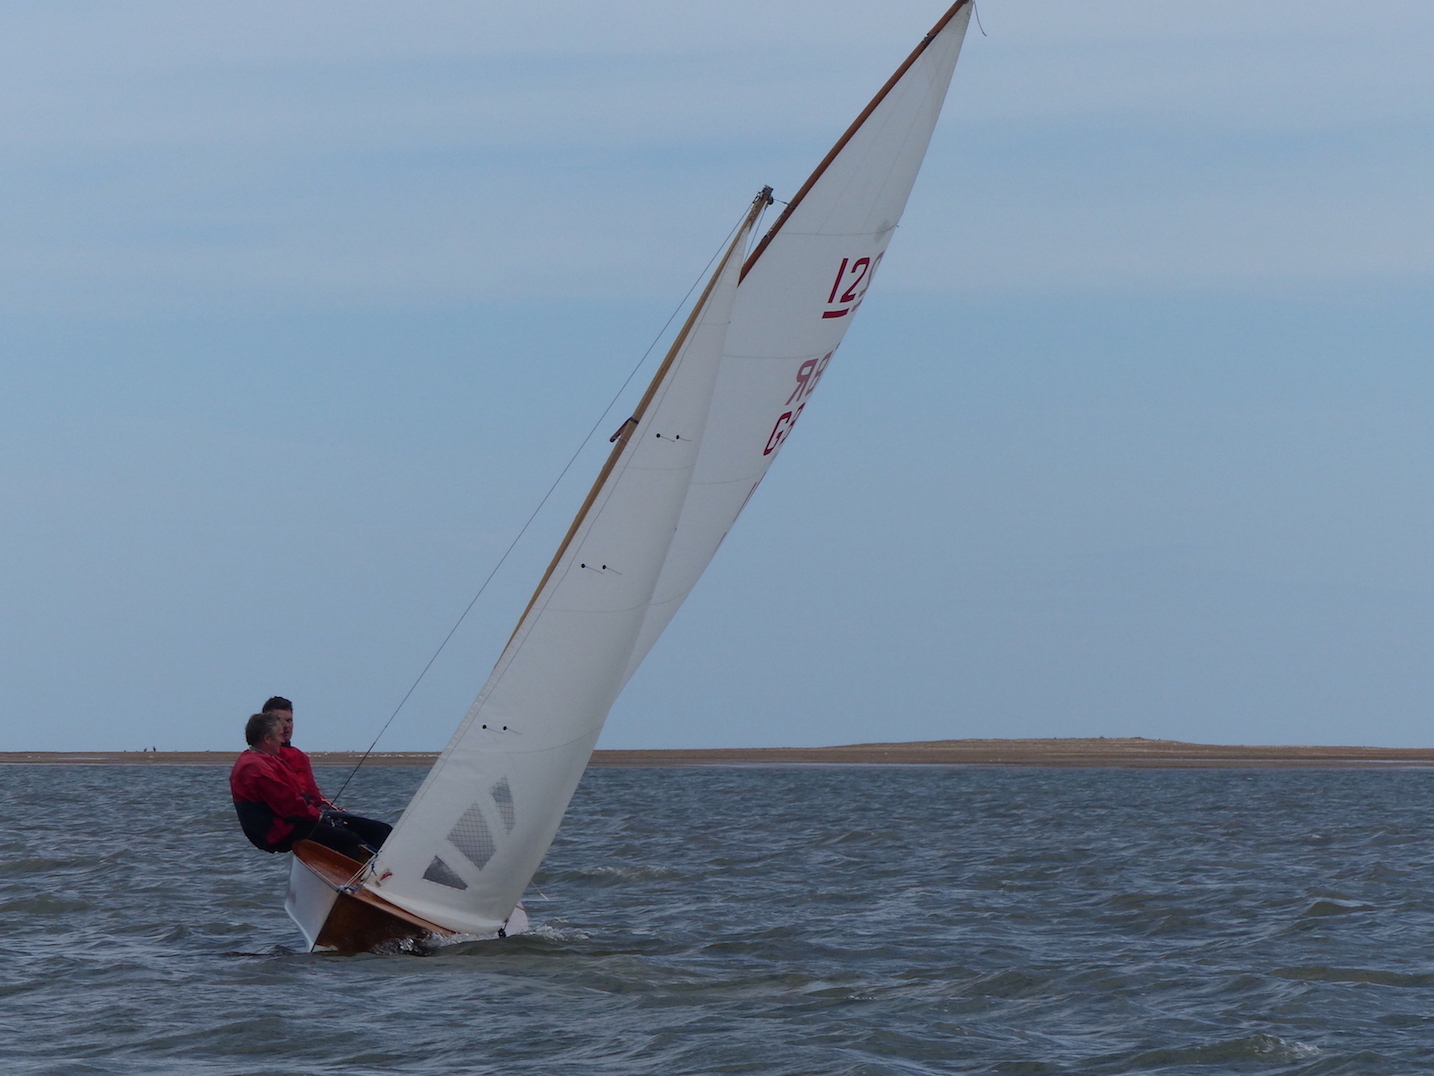 WSC 12GBR leaning out